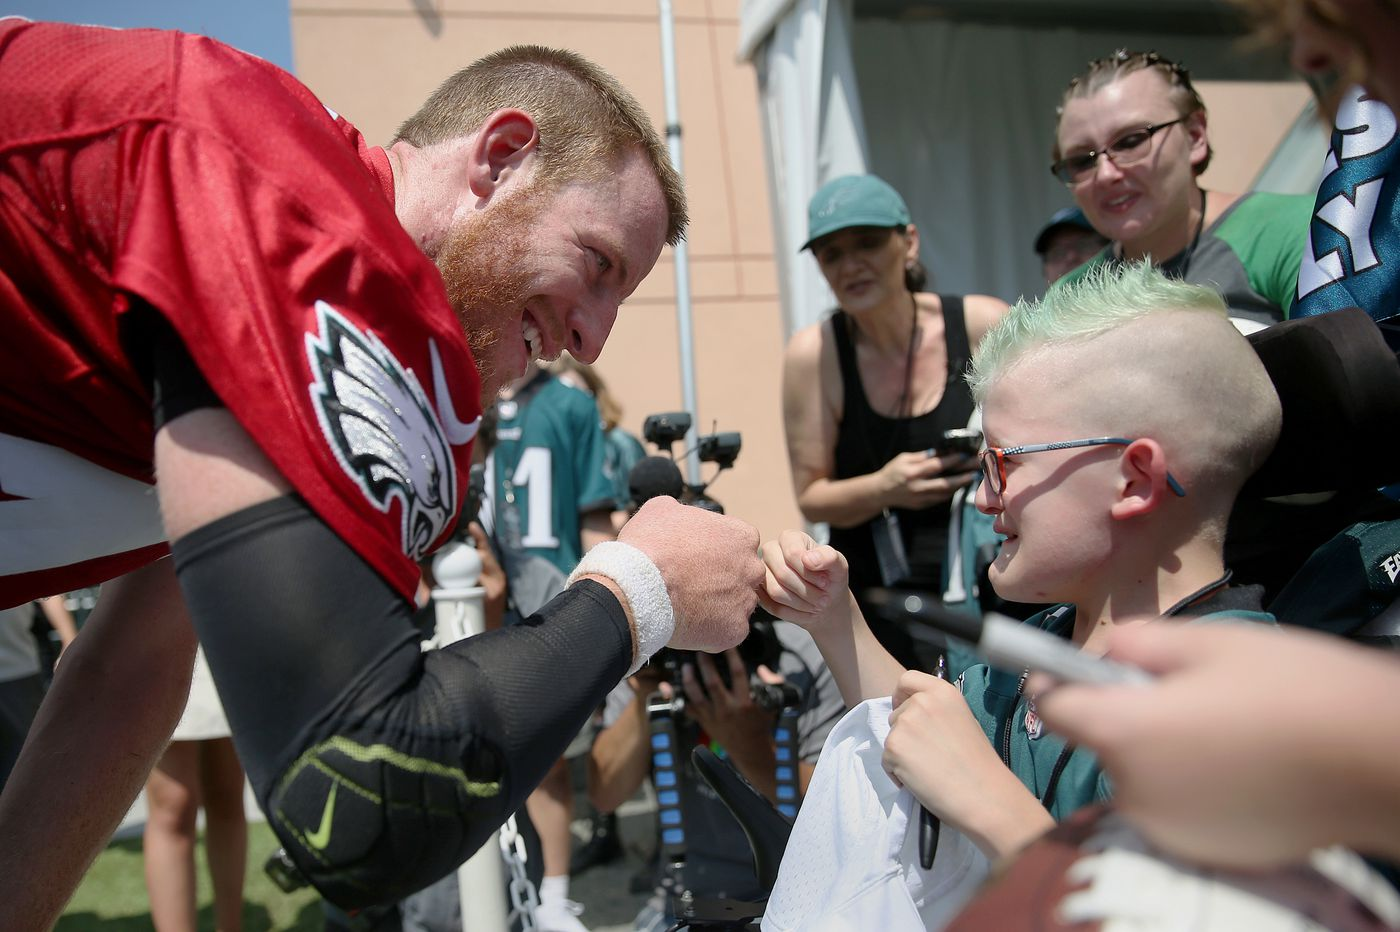 'It was magic': Eagles fan who's had 12 operations meets his hero, Carson Wentz, at training camp